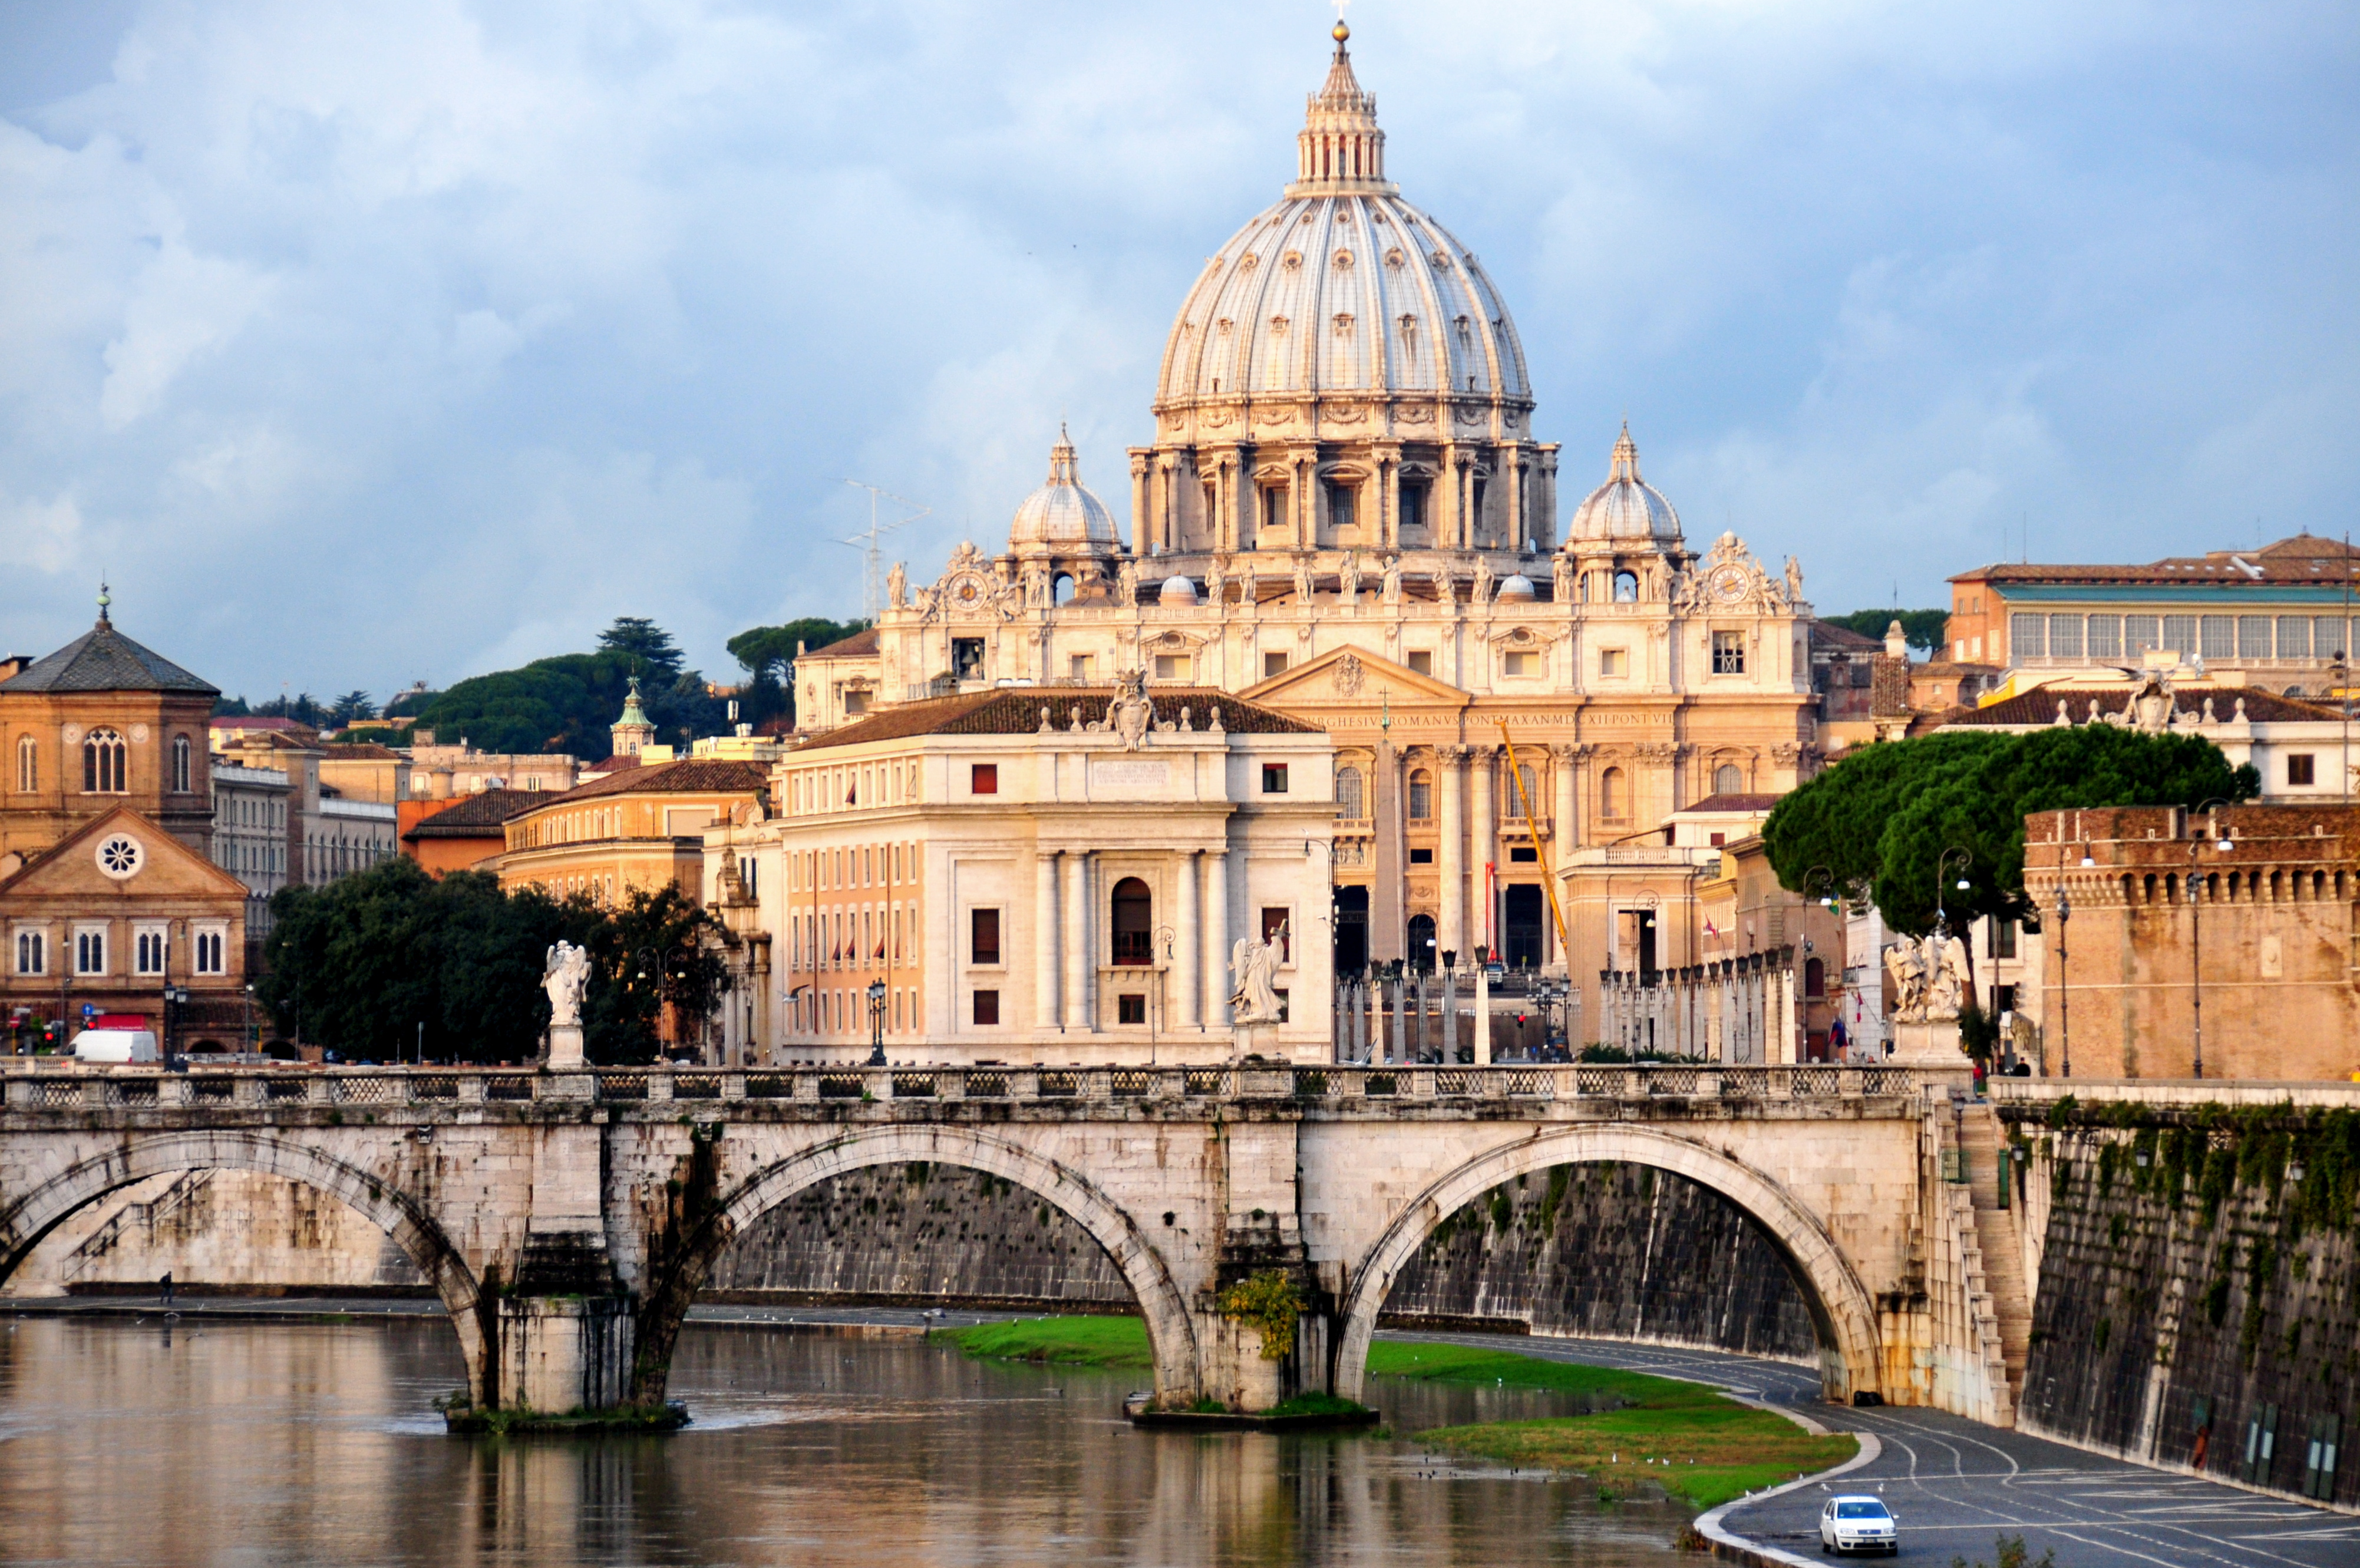 St. Peter's from Ponte Umberto. Photo: Ed Yourdon (CC BY-NC-SA 2.0)